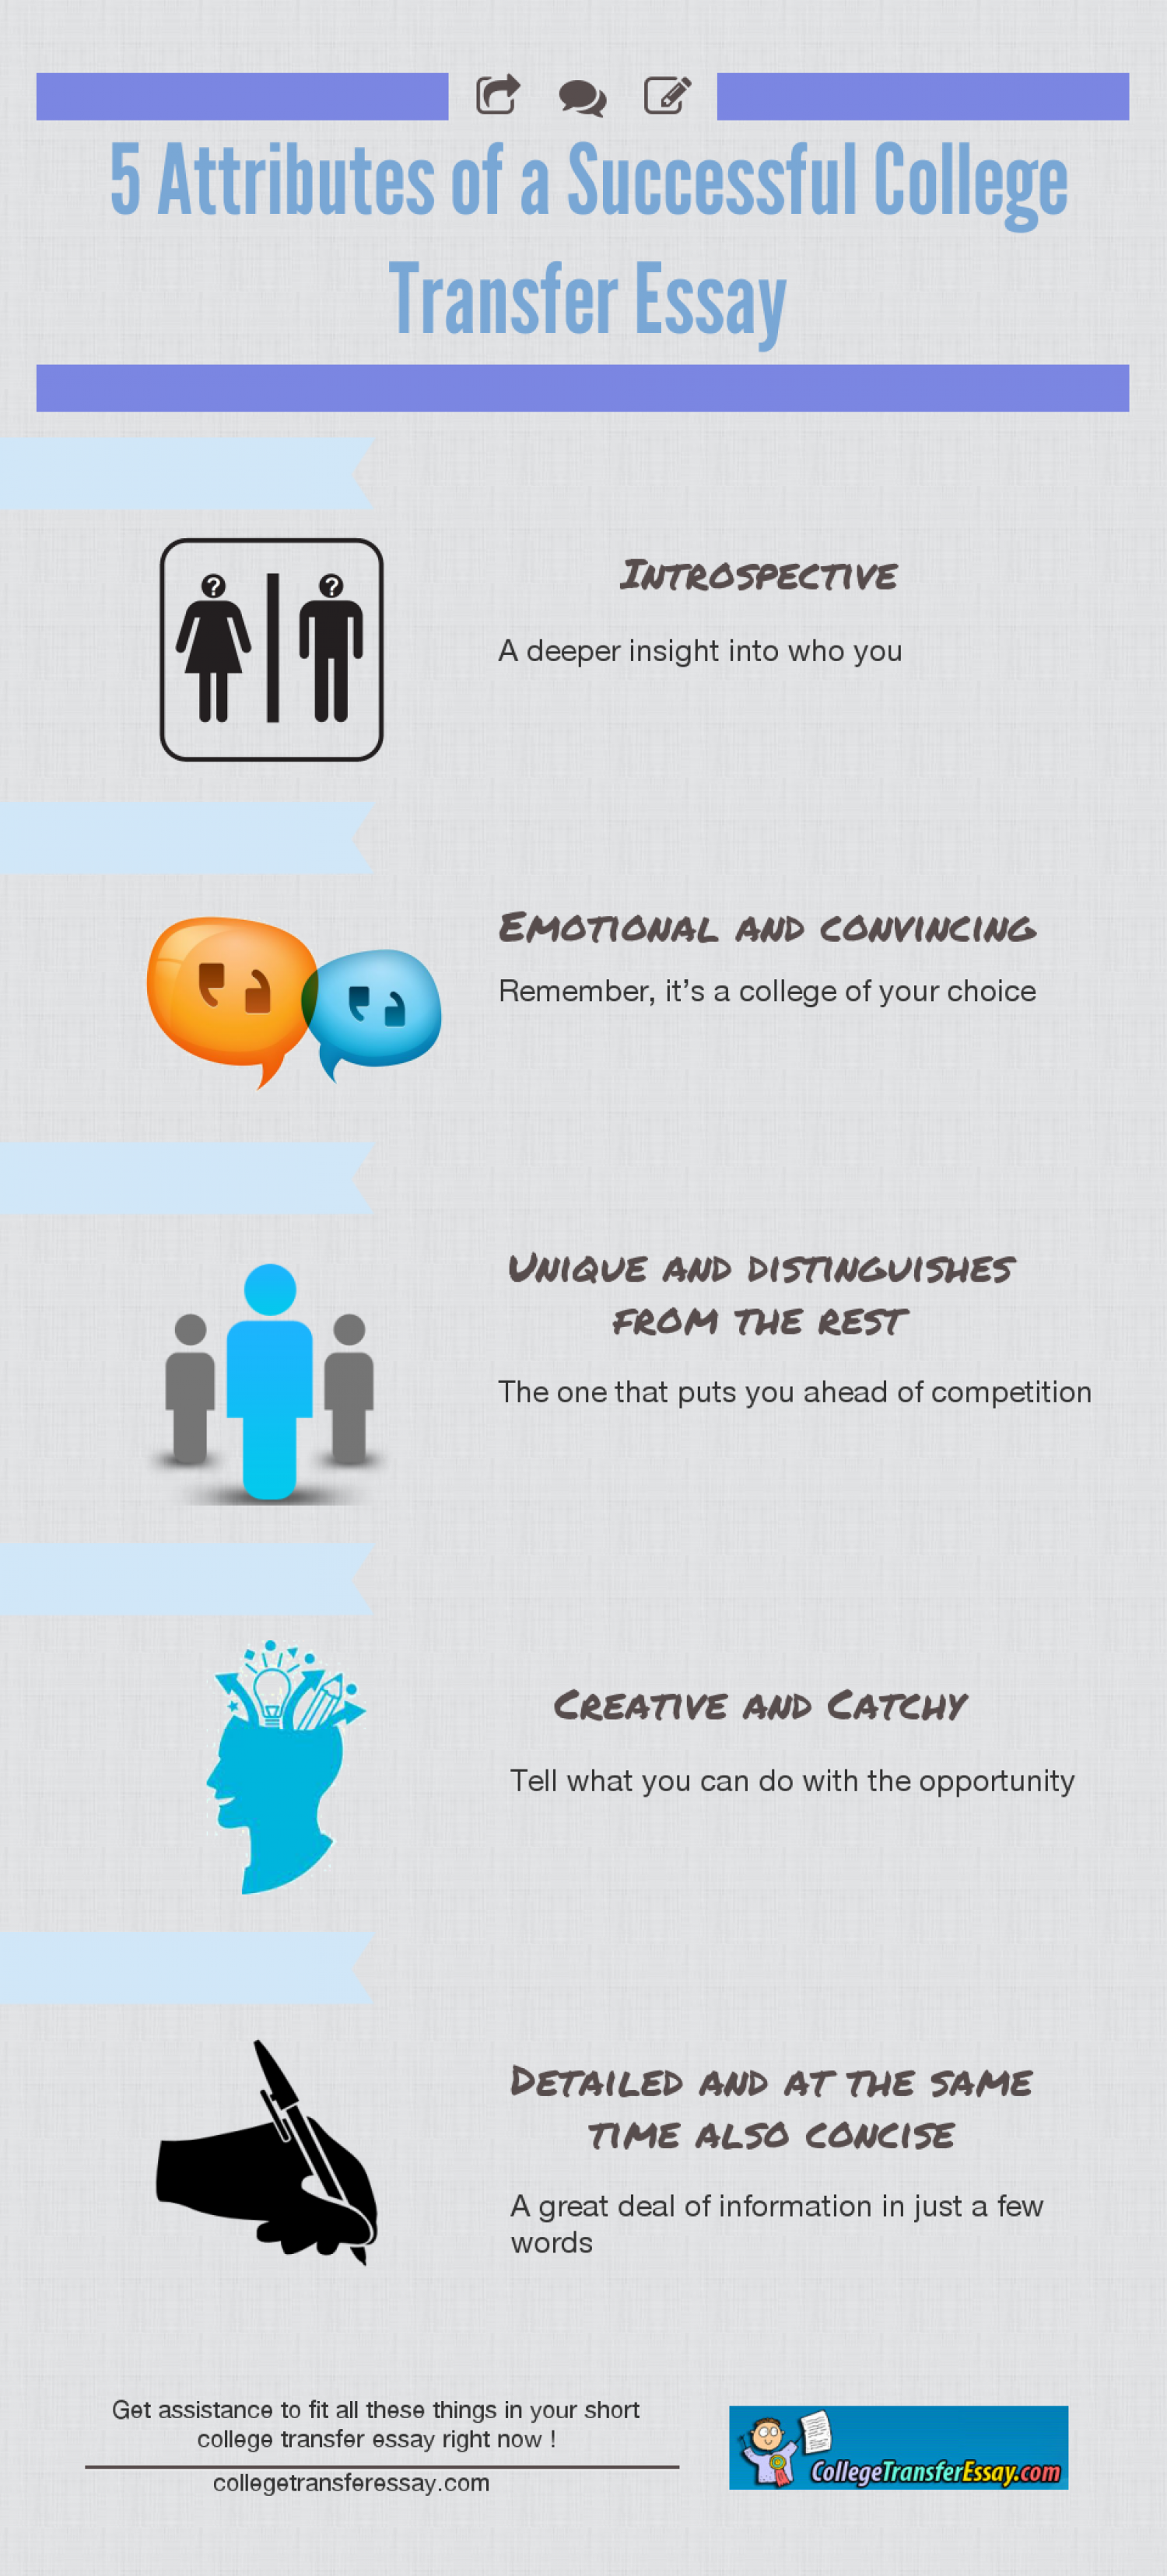 Steps to writing a successful essay